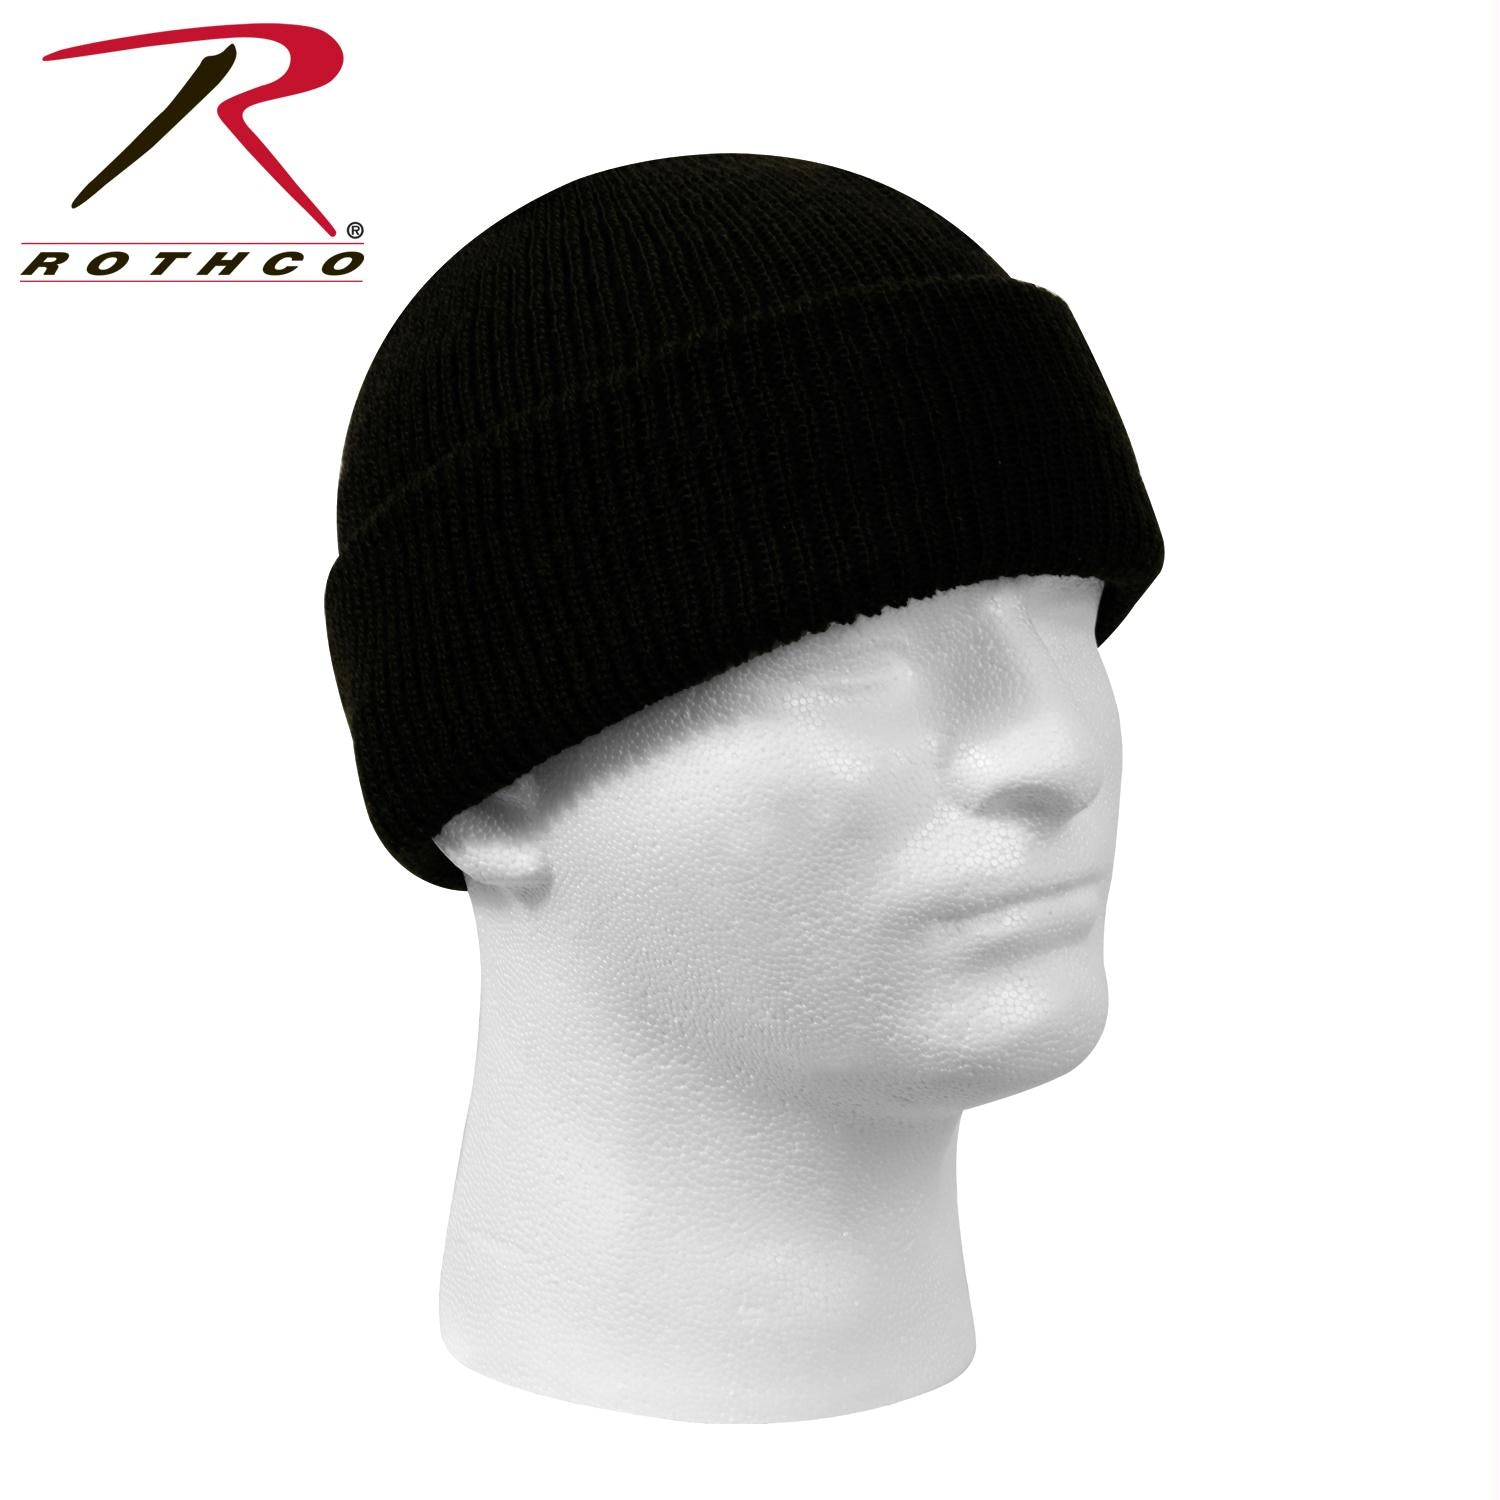 Genuine G.I. Wool Watch Cap - Black